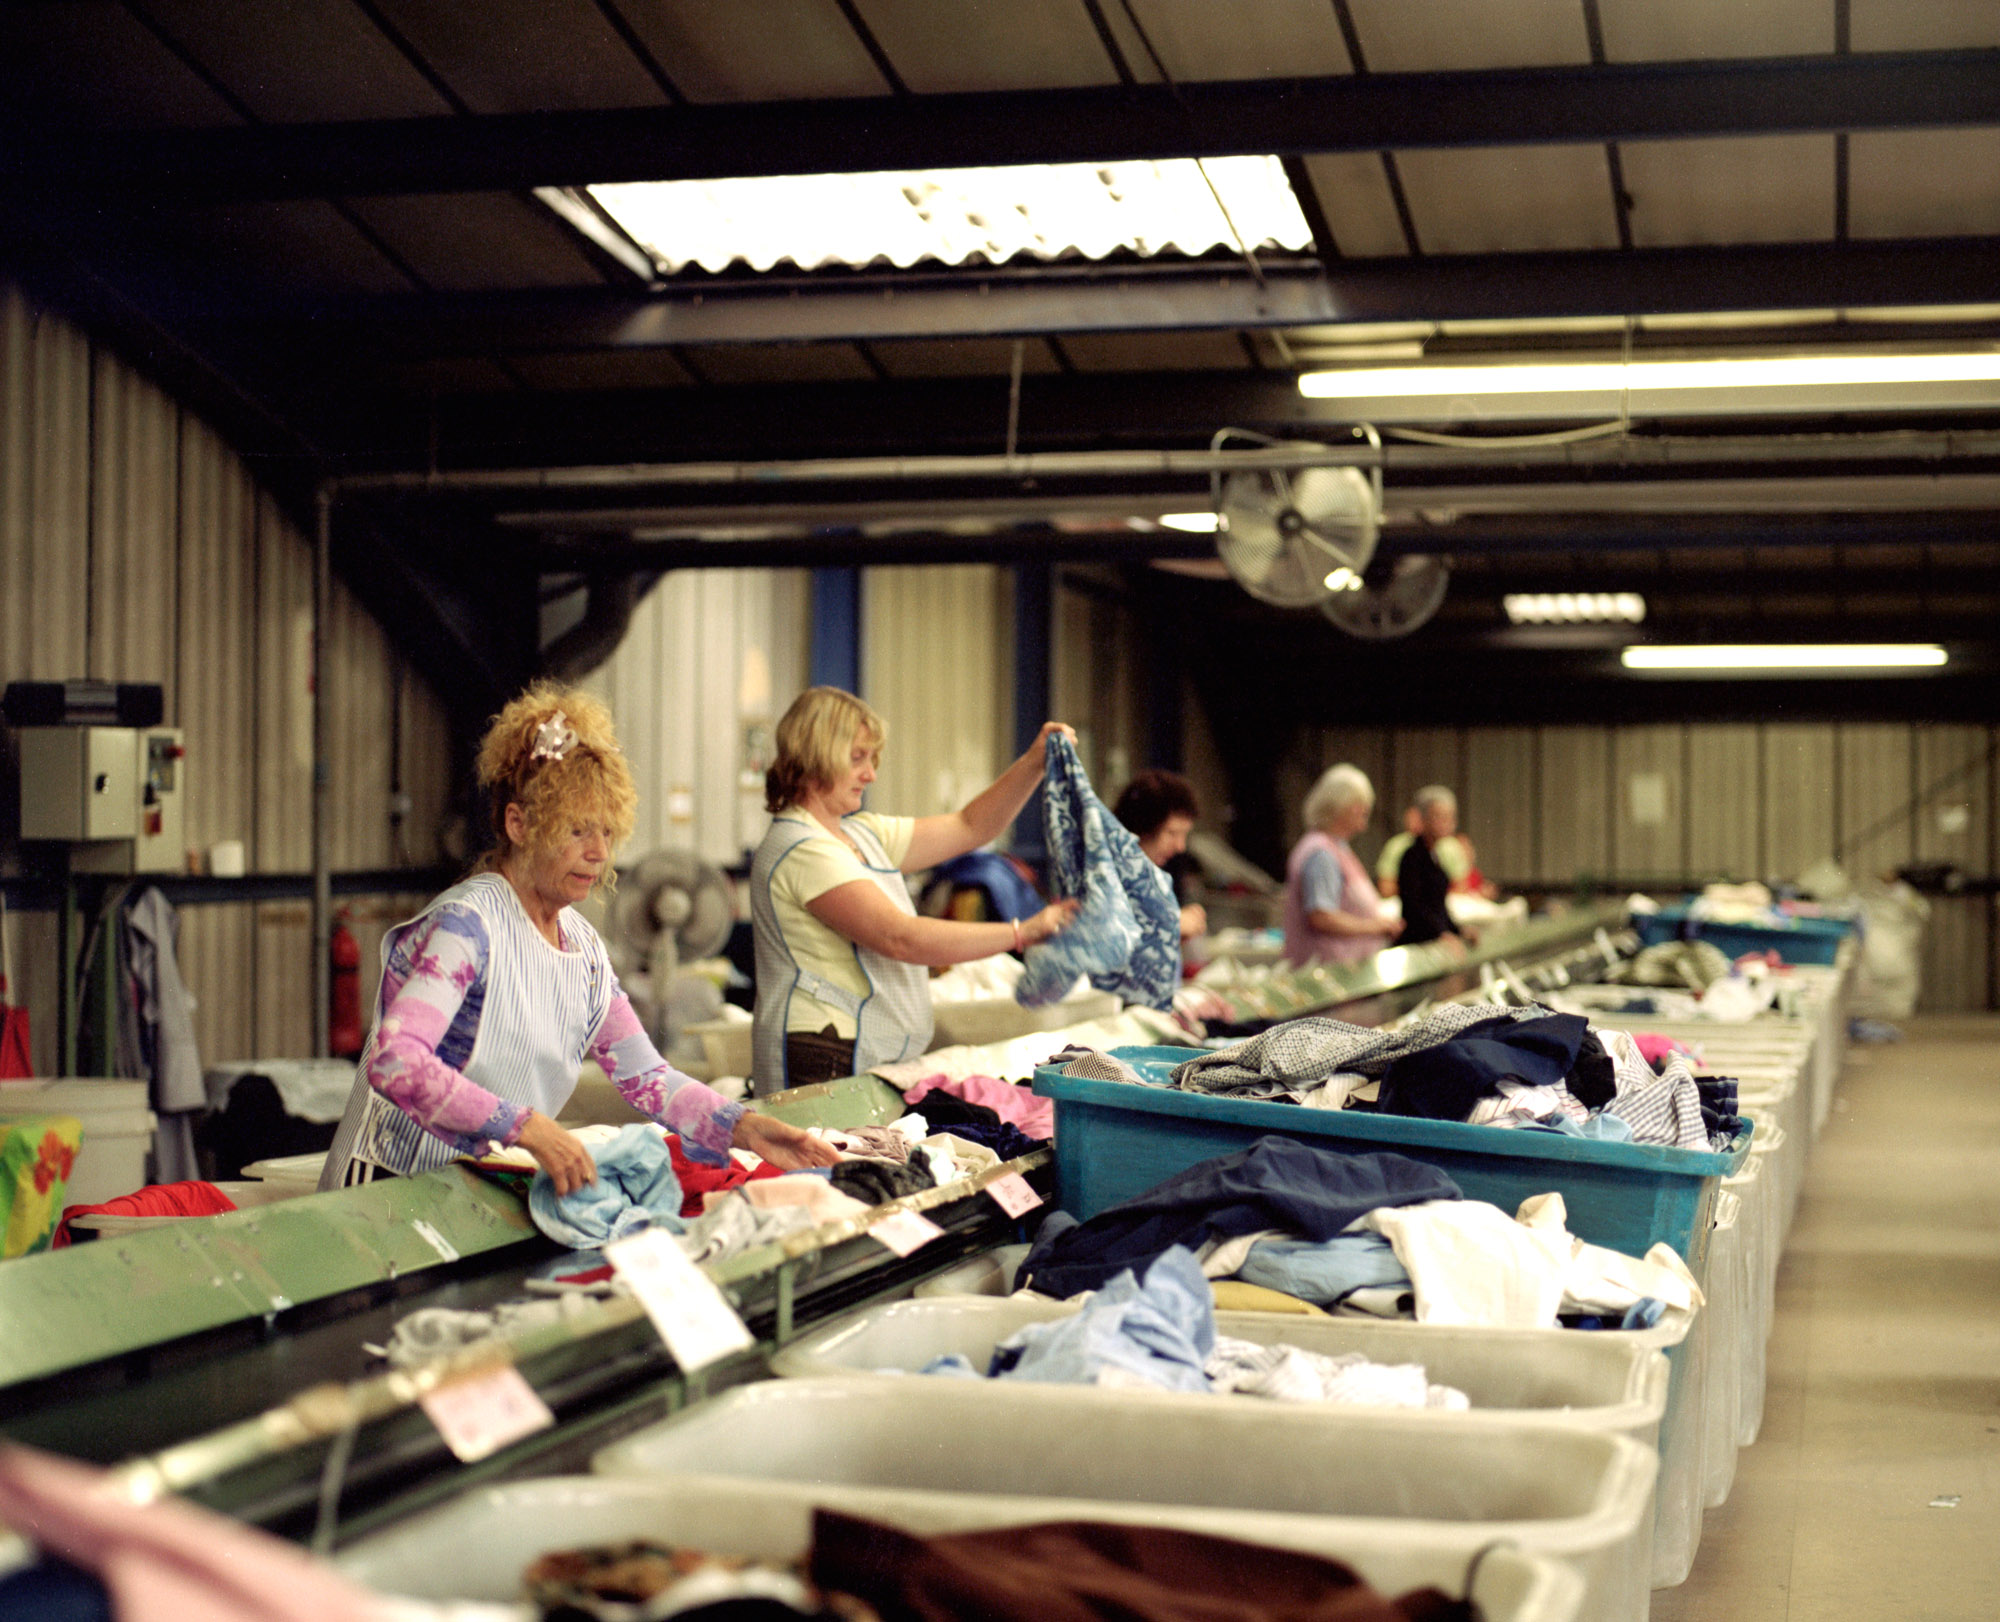 Over half a million tonnes of cast-offs are collected annually, of which only  about 20% is reused in the UK. Clothes are sorted and graded into categories  based on garment style, fabric, weight and colour depending on the current demands of the various markets.